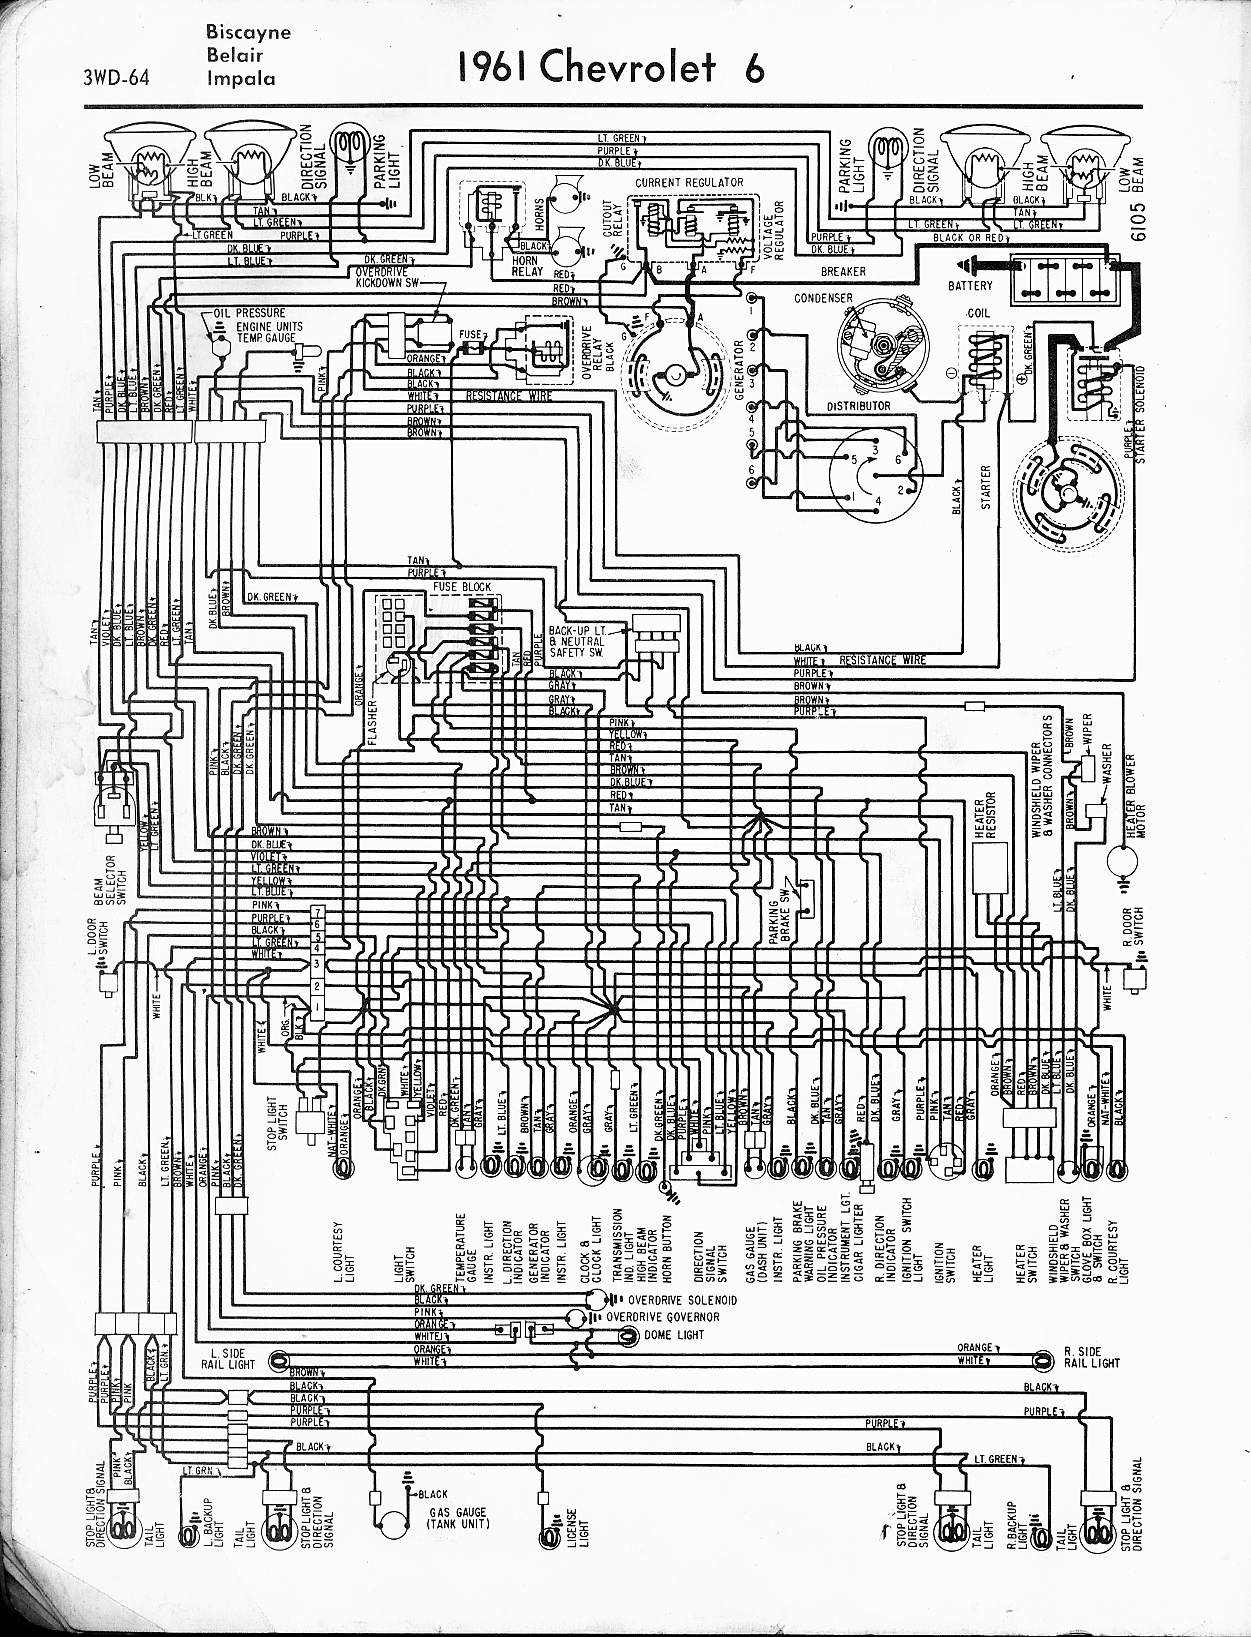 MWireChev61_3WD 064 57 65 chevy wiring diagrams 2001 corvette wiring diagram at fashall.co